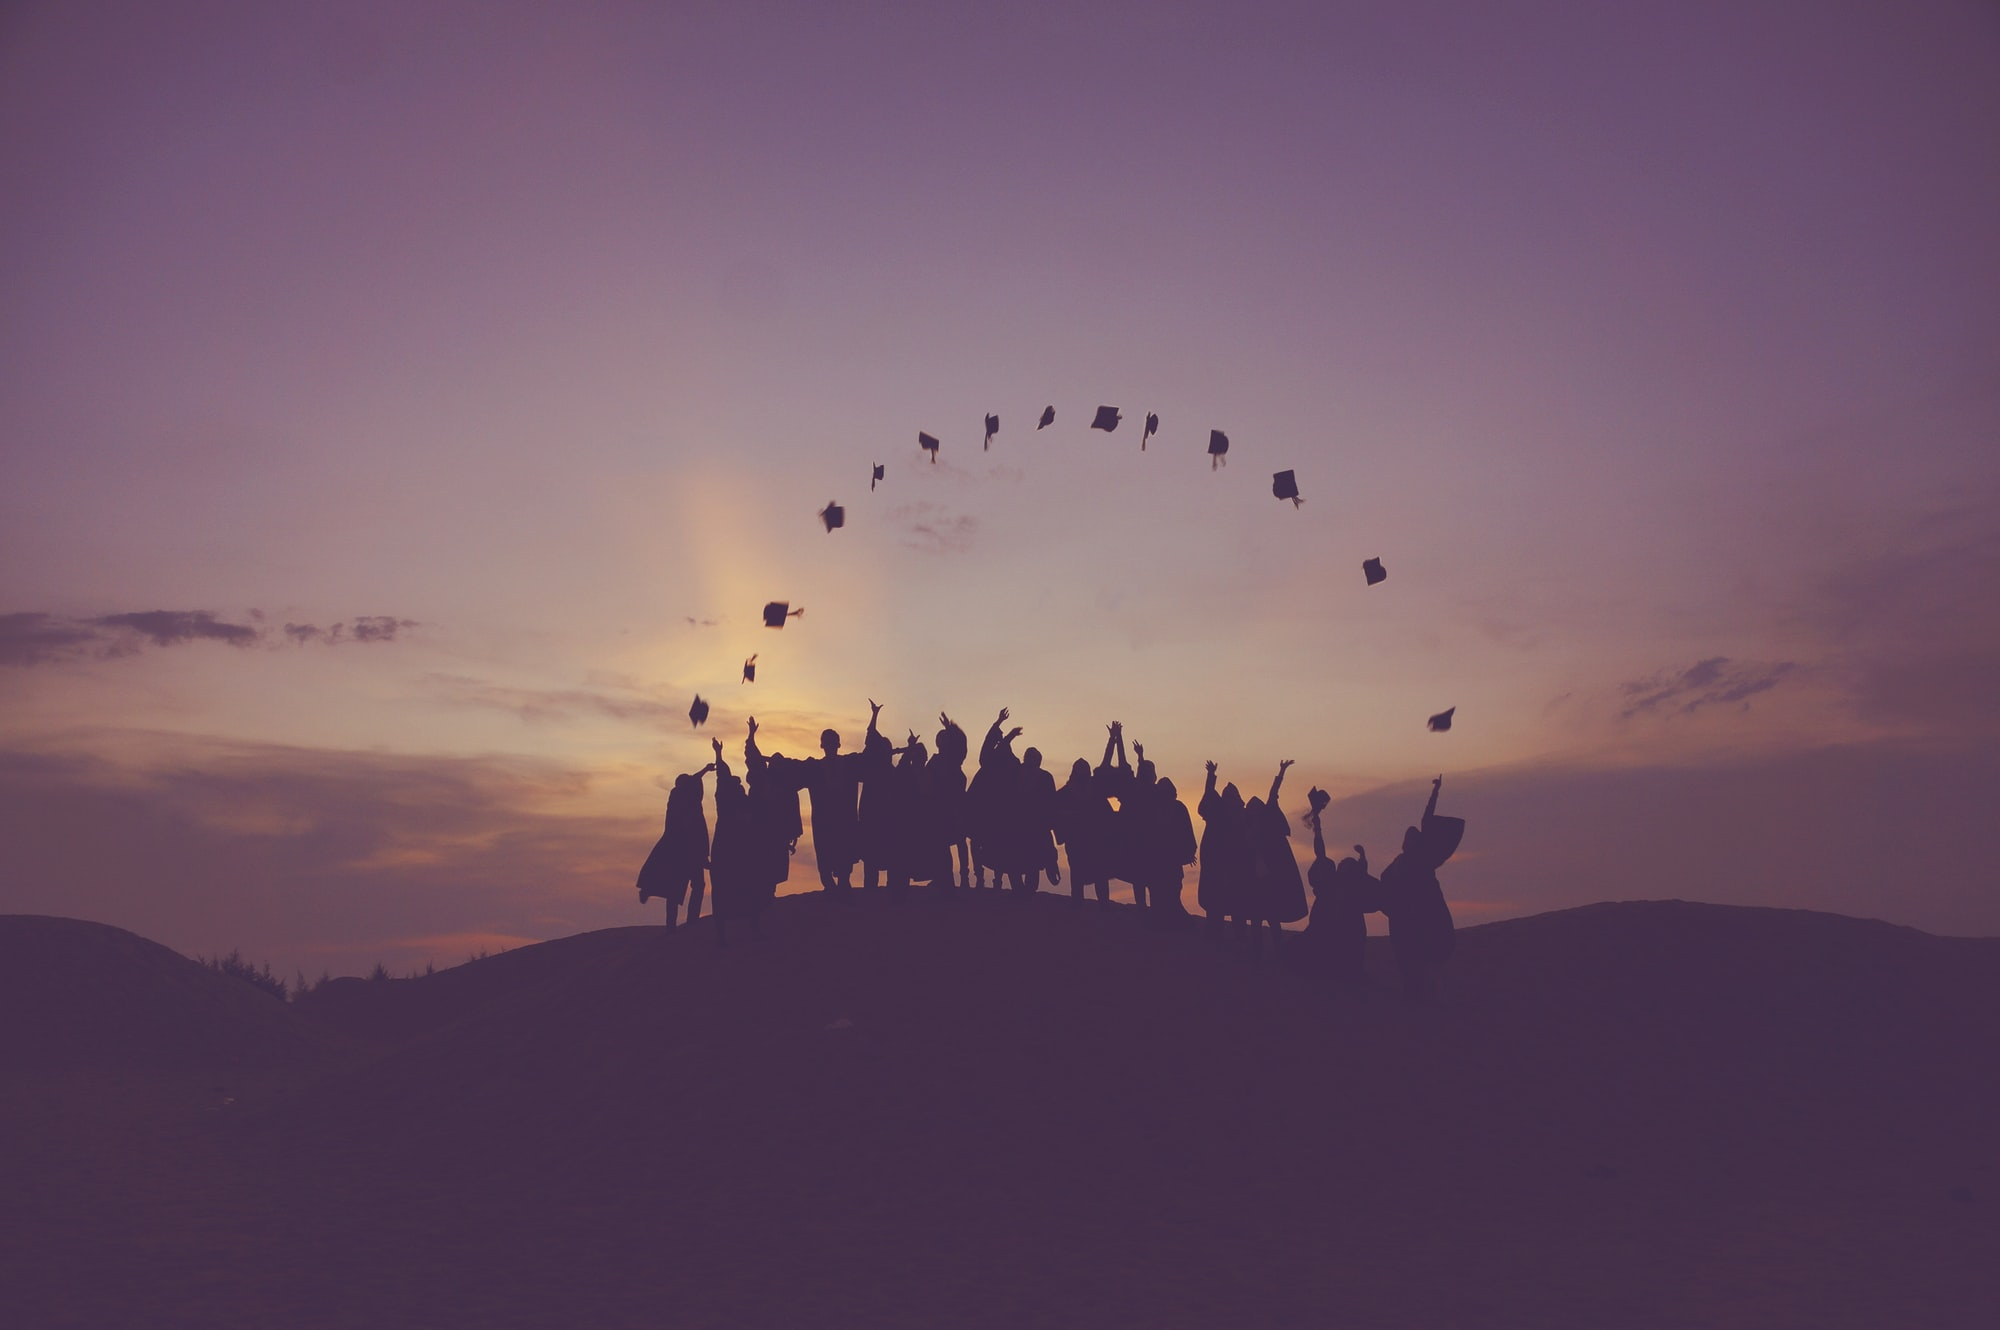 Graduate Certificate Programs: Pros and Cons